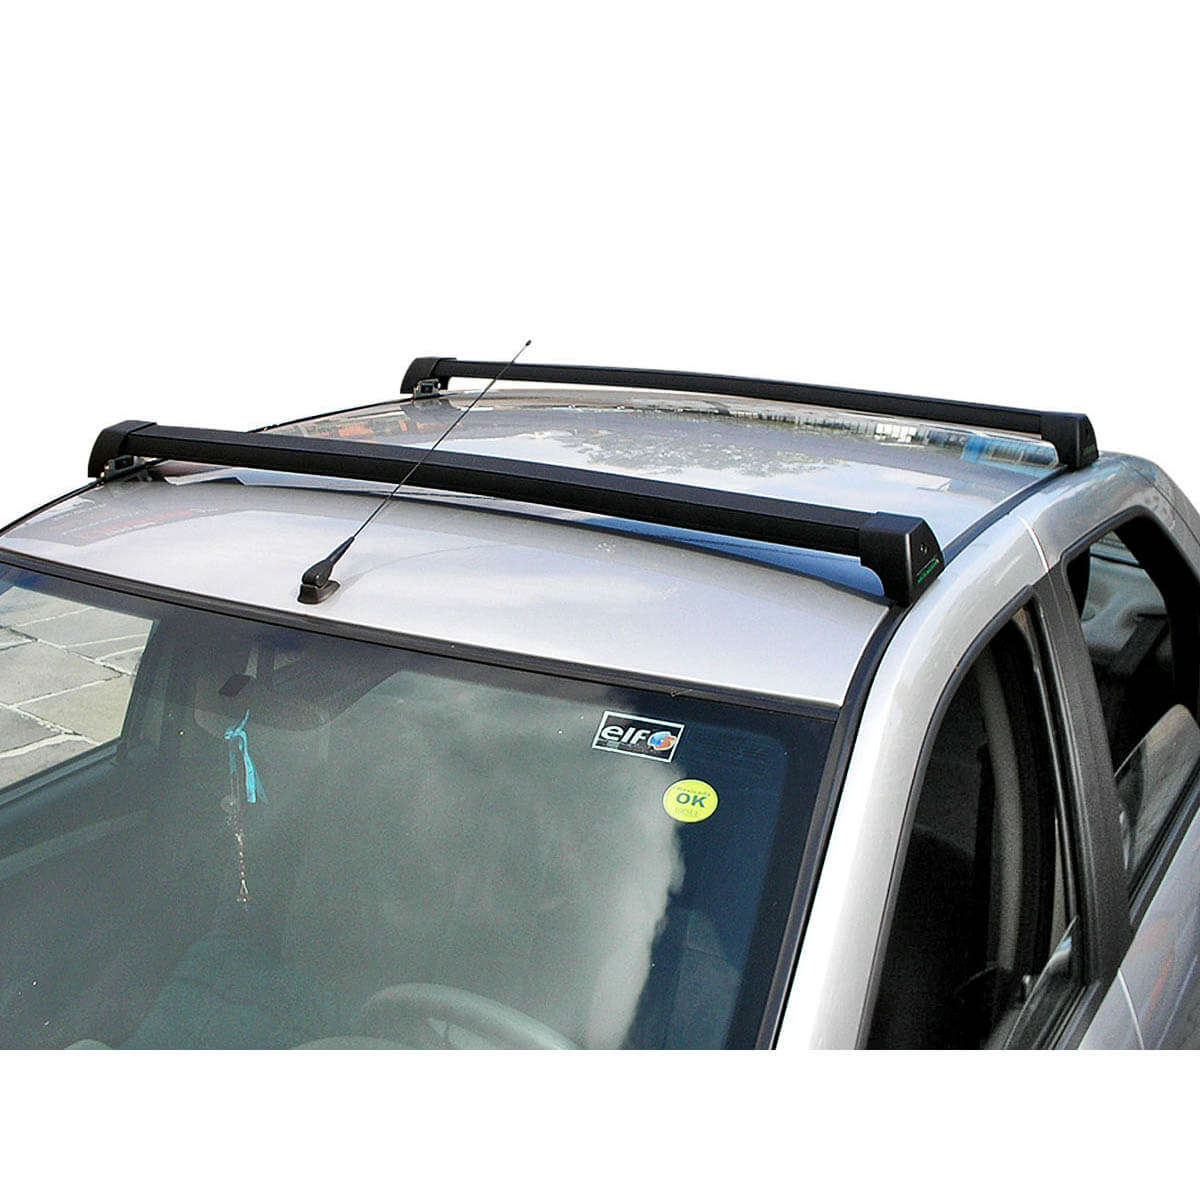 Rack de teto Xsara Picasso 2001 a 2012 Long Life Sports preto